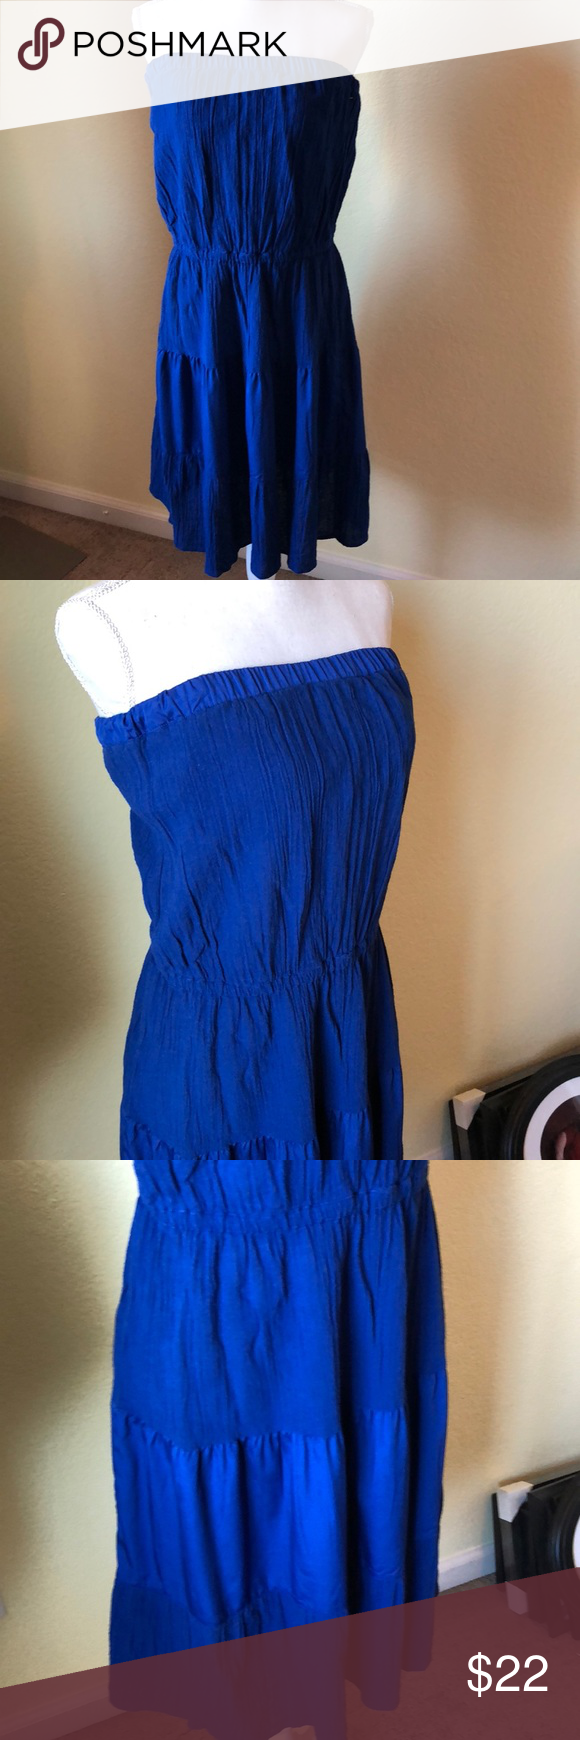 bccaf6b53ae21 Banana Republic strapless dress size medium This listing is for a gently  used item. Banana